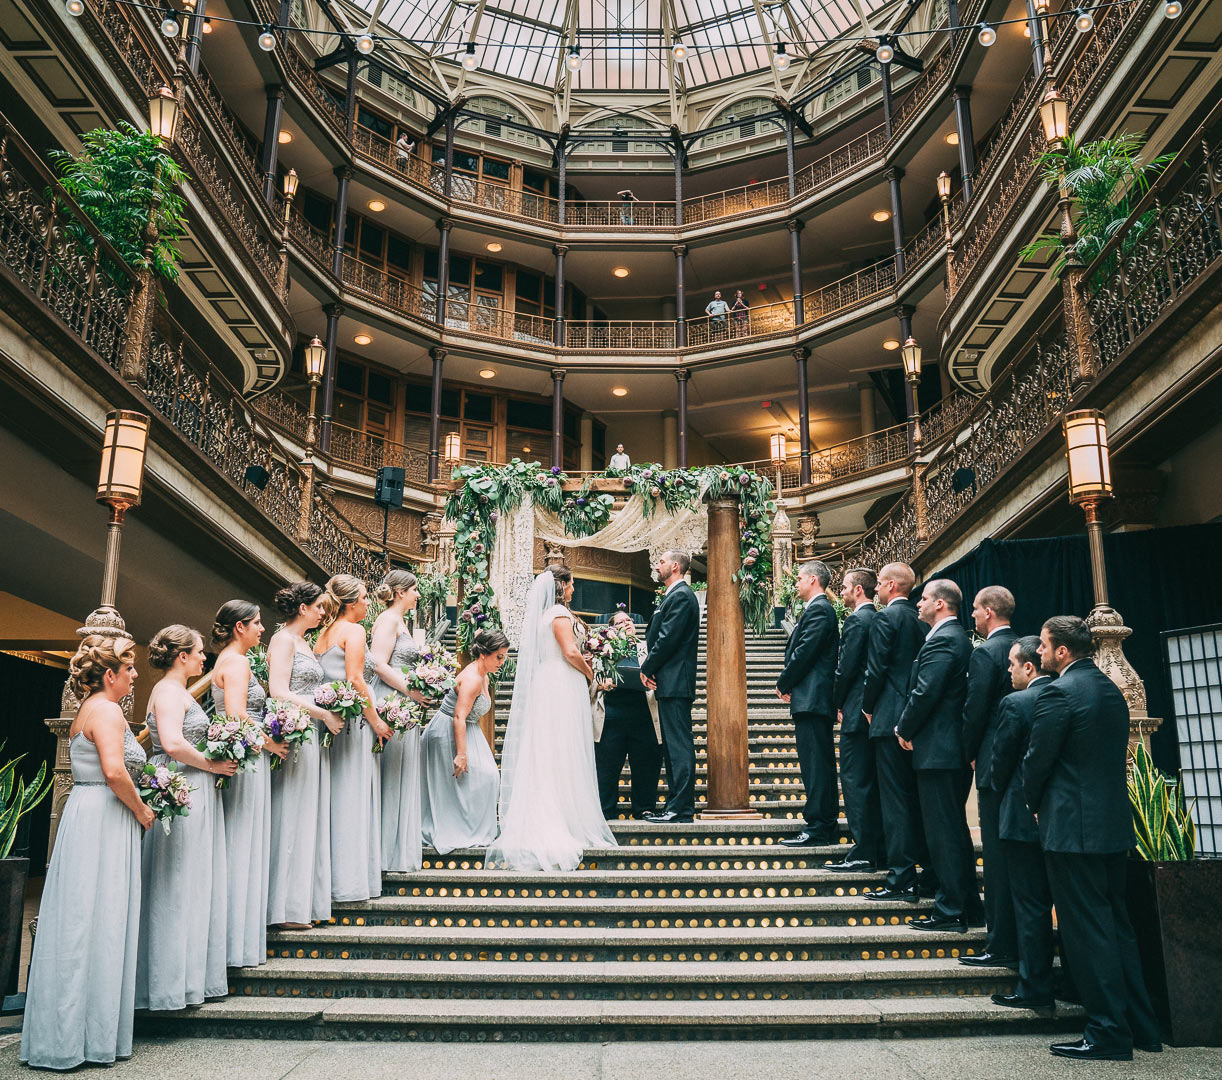 Hyatt Regency Arcade: A Cleveland Wedding